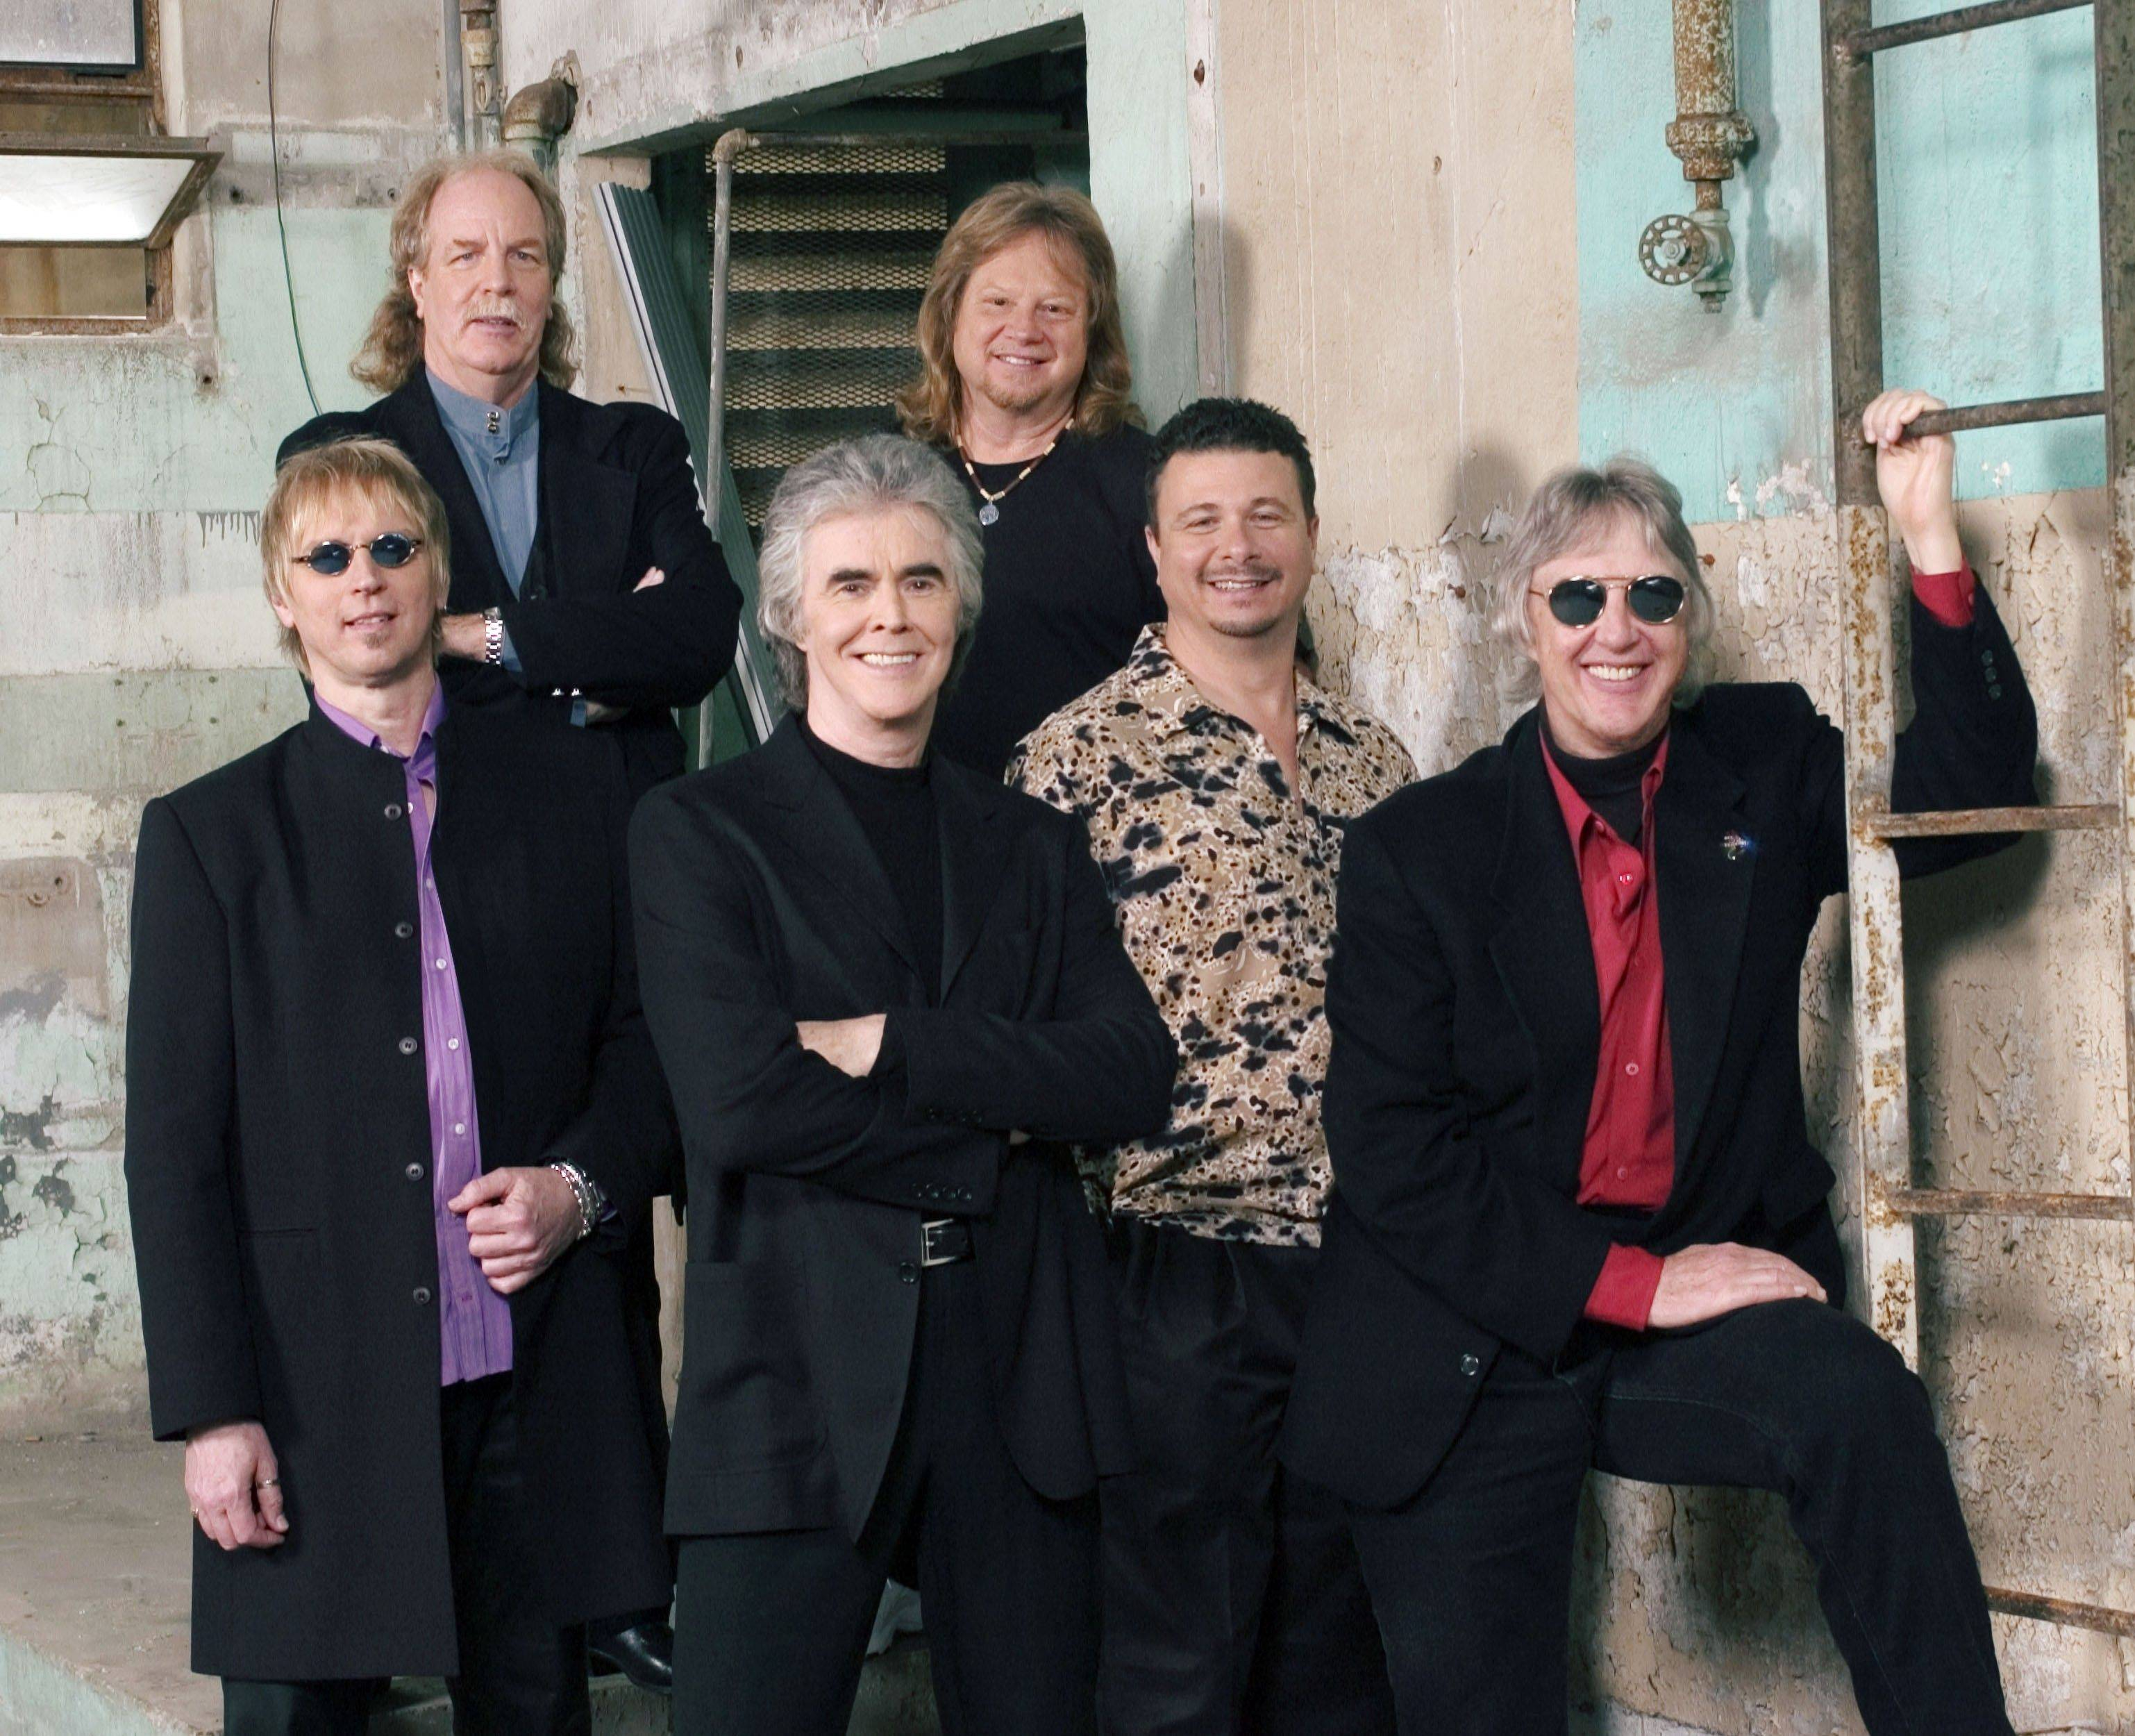 Three Dog Night will play old favorites and new recordings Sunday, Sept. 4, at Viper Alley in Lincolnshire.